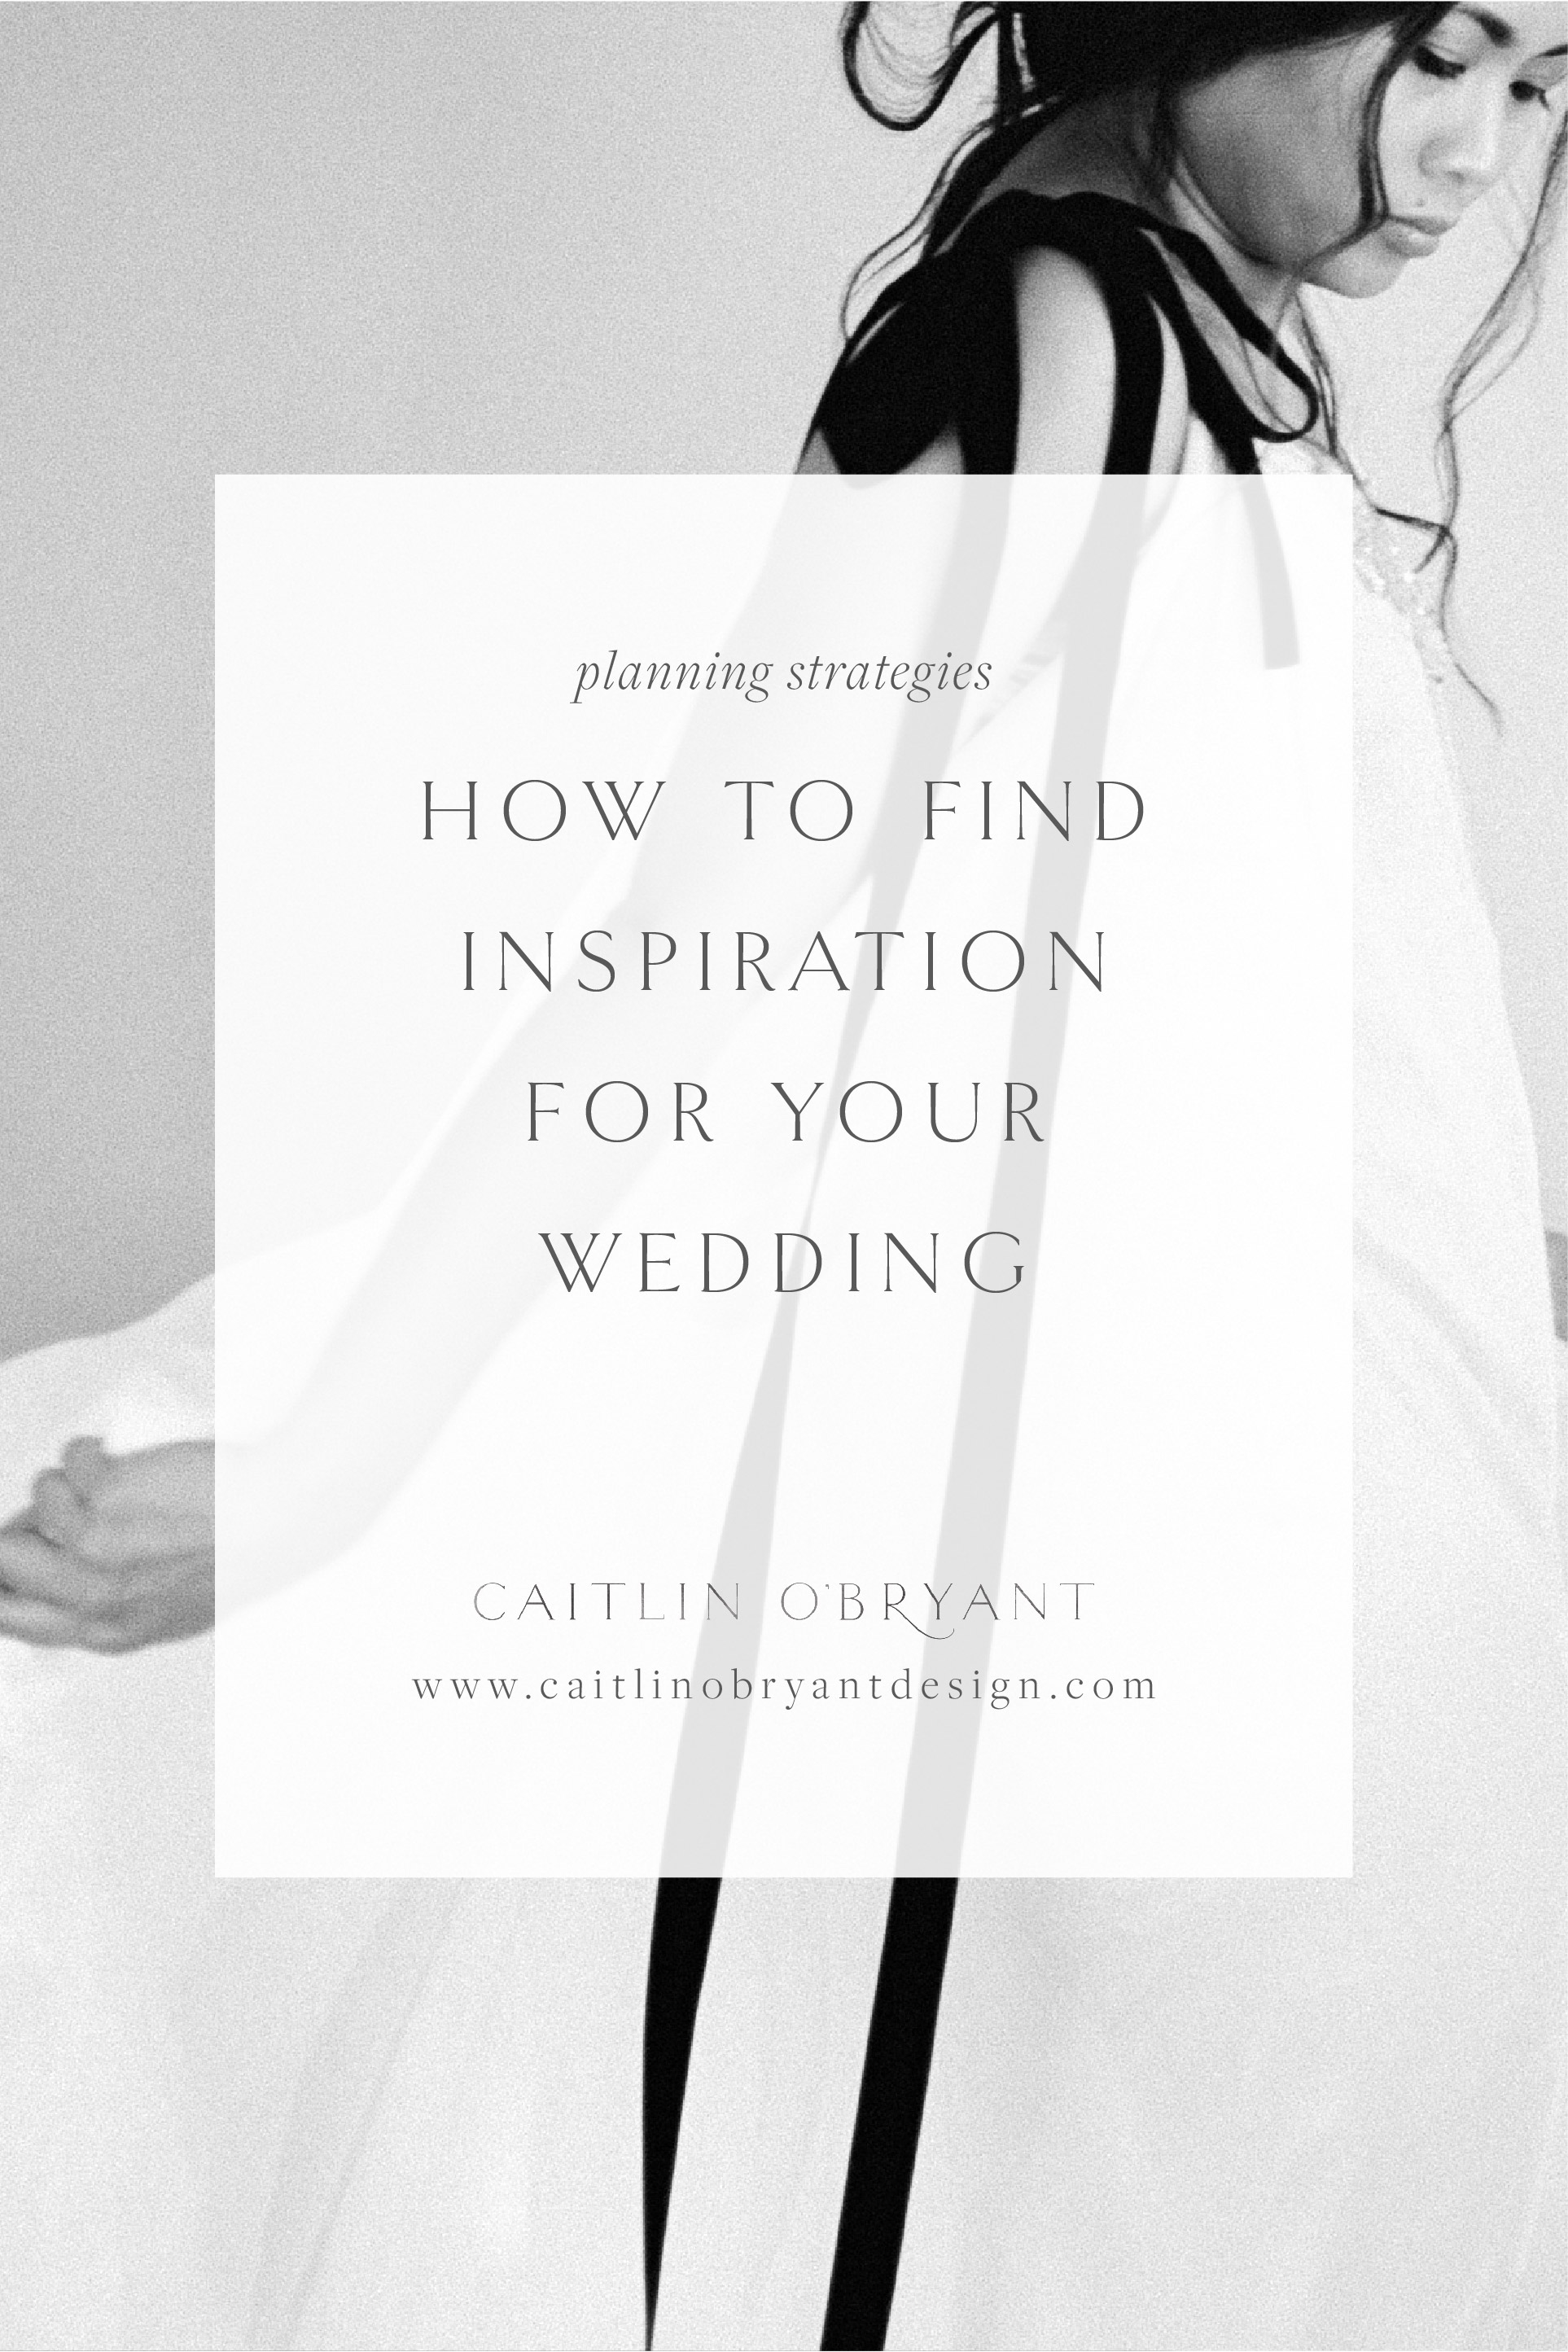 How to find inspiration for your wedding. Pinterest and social media strategies for finding wedding inspiration and turning it into a one-of-a-kind event.